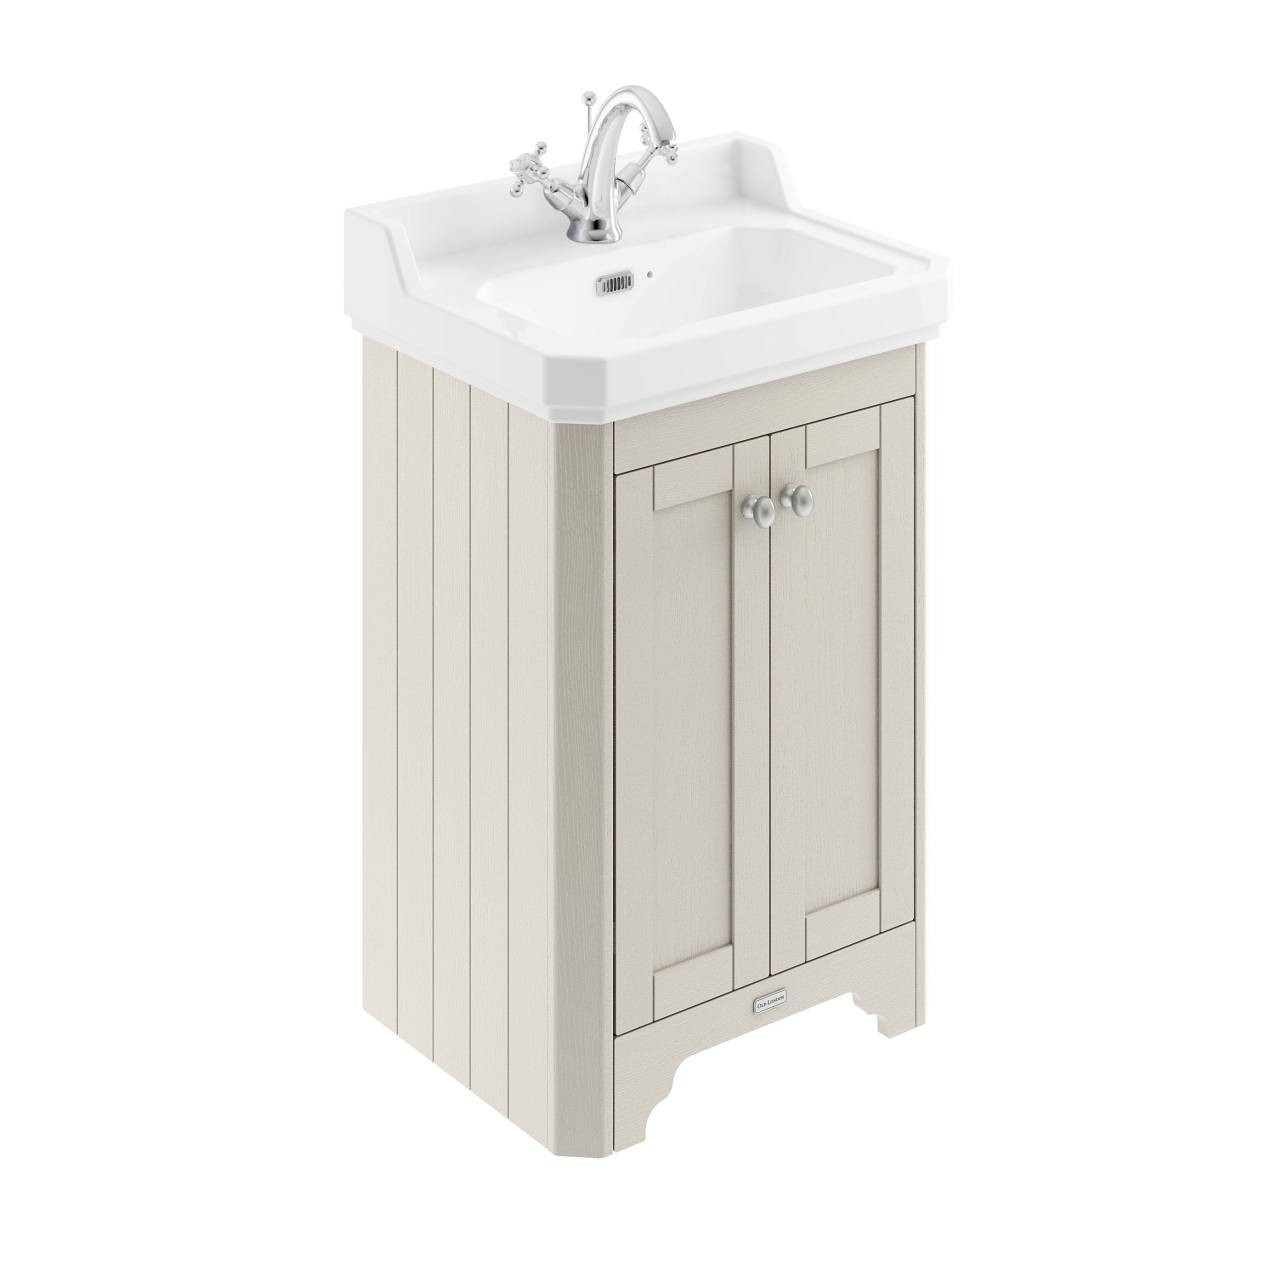 Old London Timeless Sand 560mm 2 Door Vanity Unit and Basin with 1 Tap Hole - LOF473